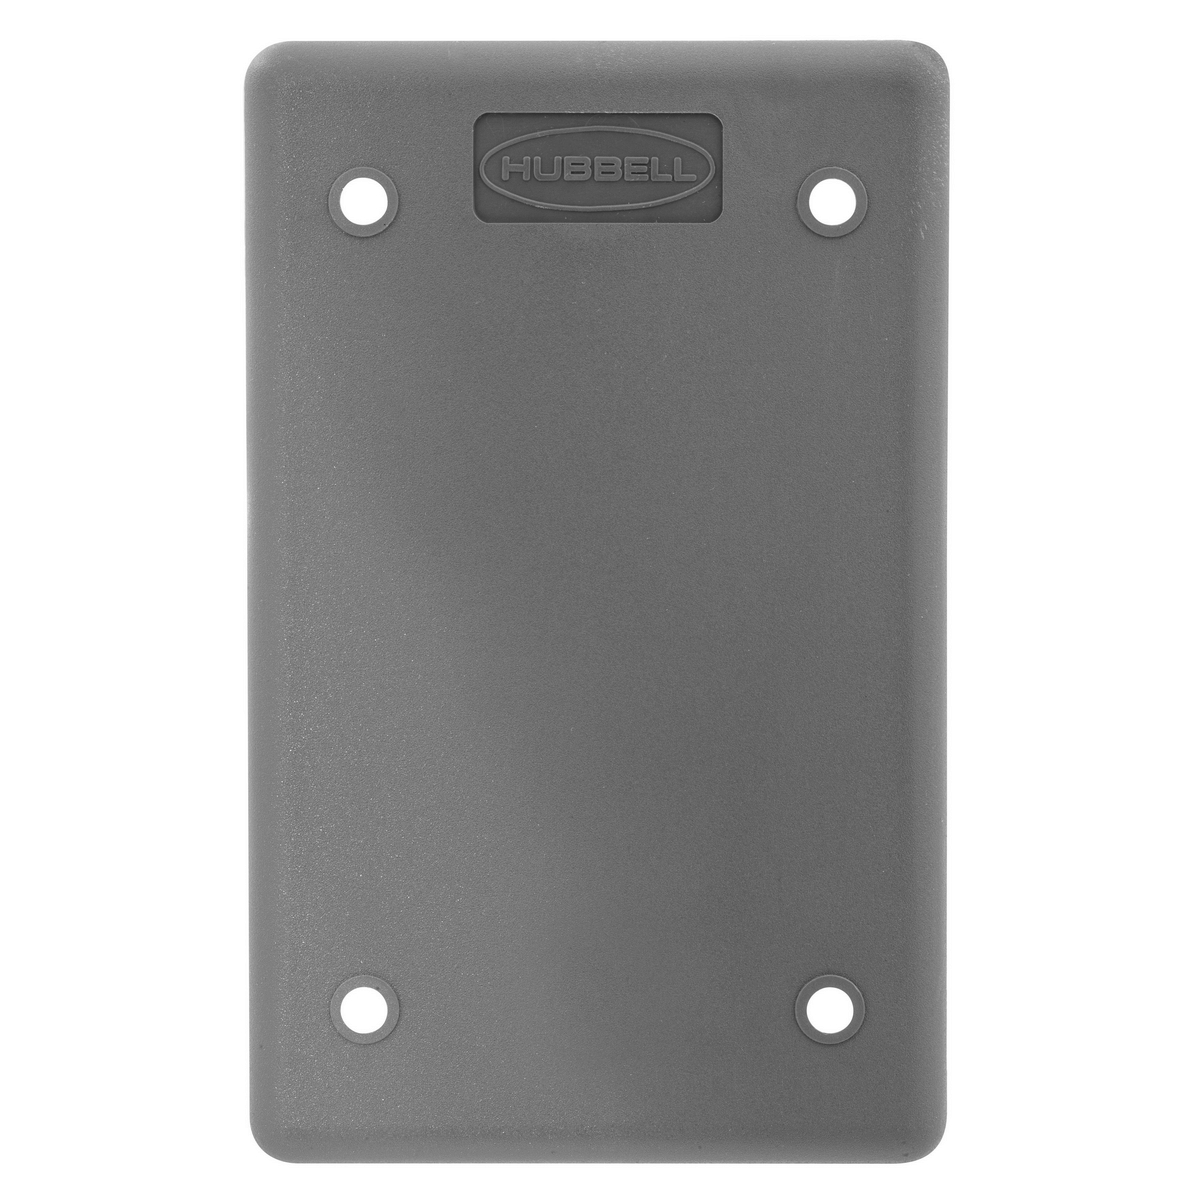 Hubbell HBLP14FS POB COVER PLATE, BLANK, GRAY